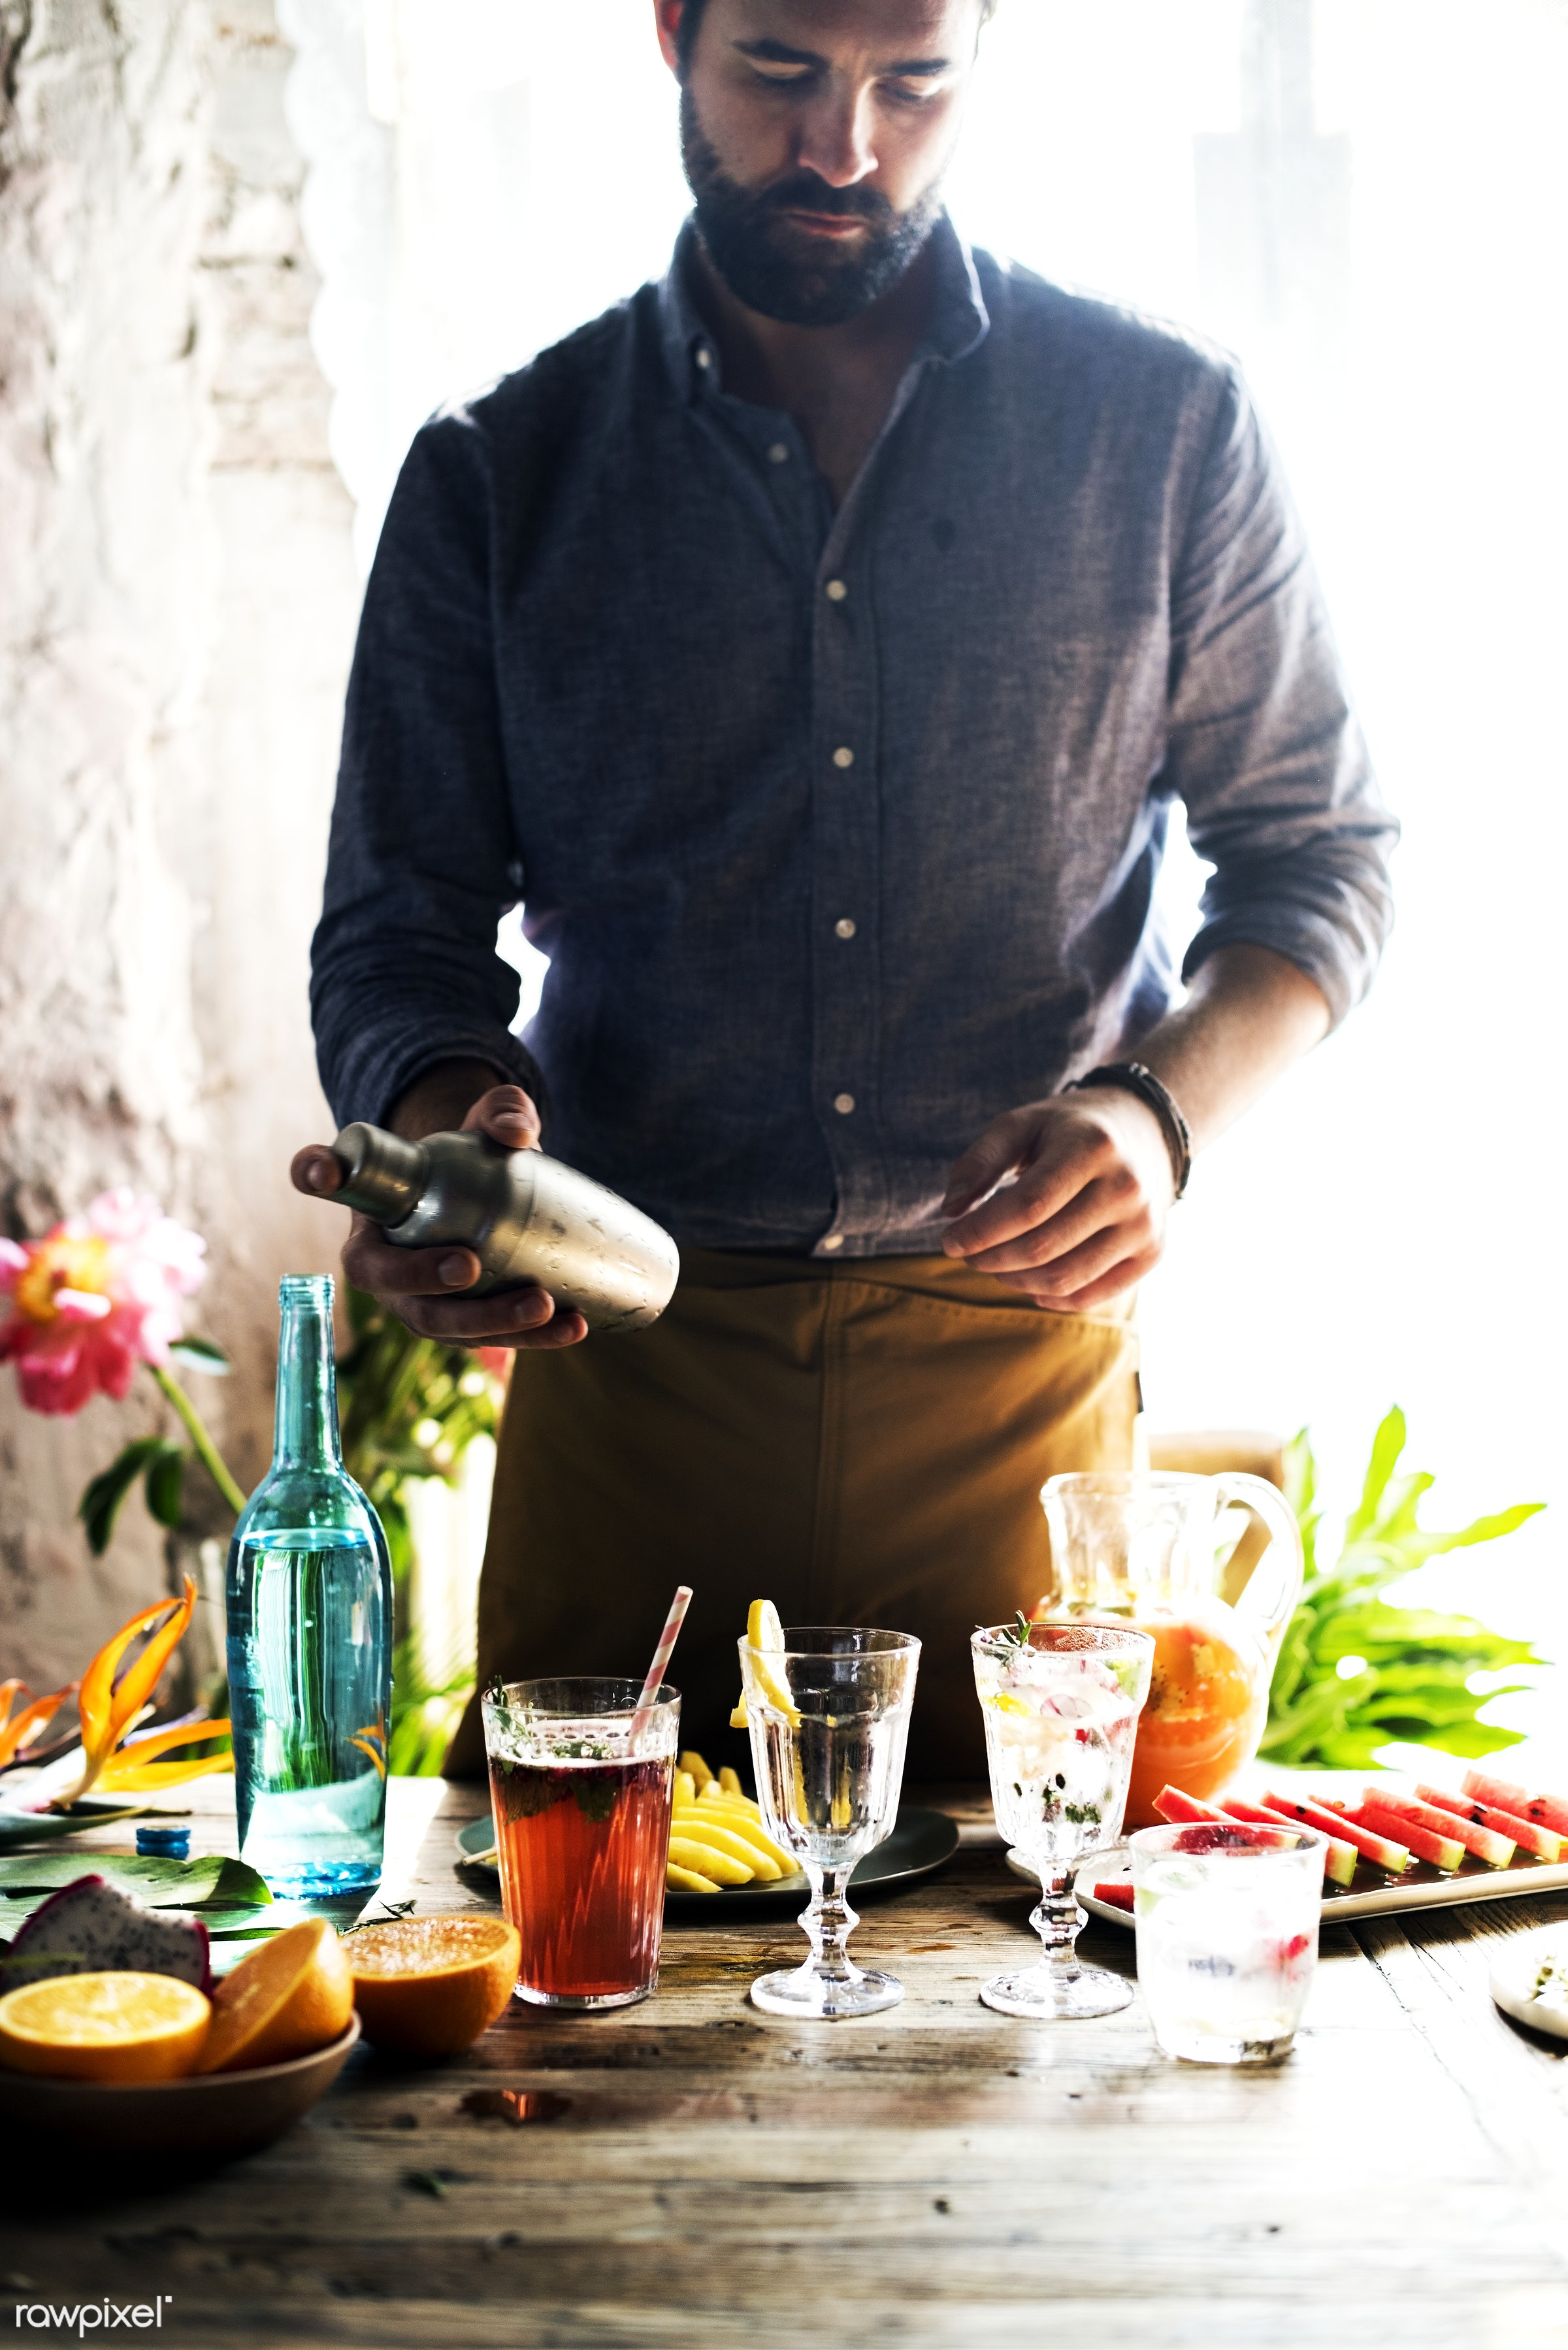 Bartender mixing colorful cocktails - alcohol, bar, barman, bartender, beard, beverage, candid, casual, cocktail, creating,...